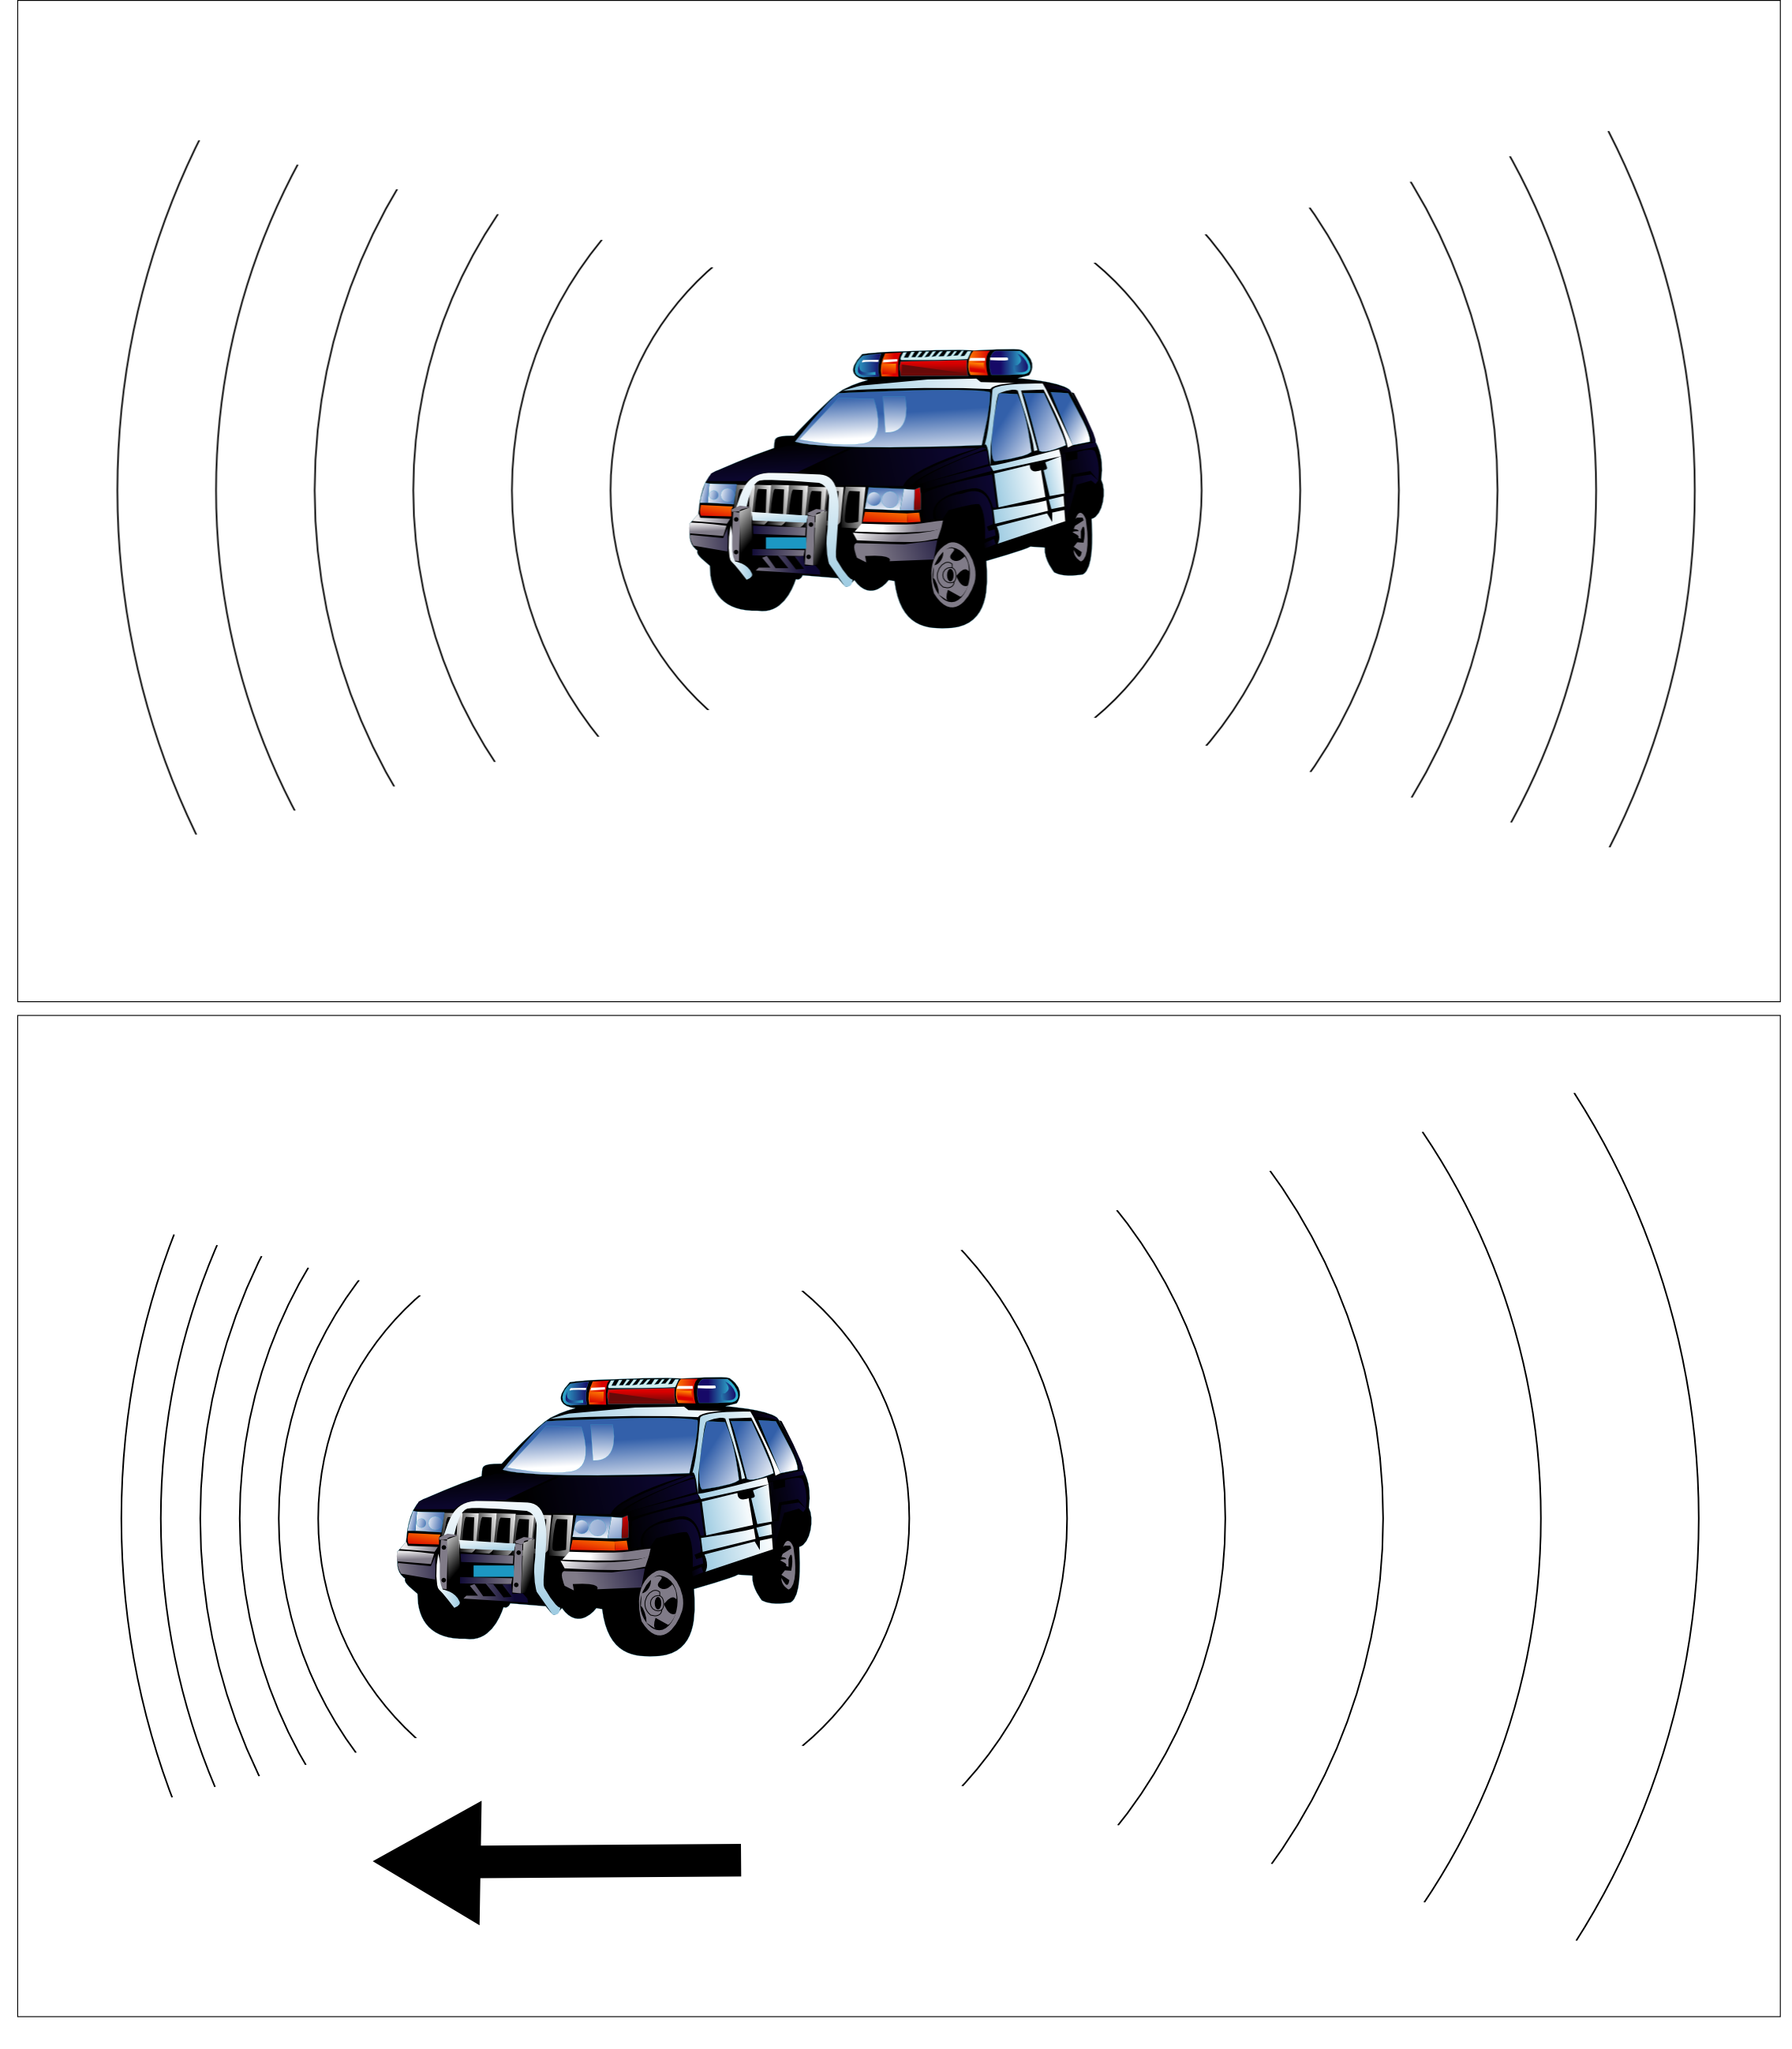 Top: A police siren doesn't change in pitch when the cruiser is sitting still. Bottom: When the police car starts moving, the sound waves ahead of the car pile up on each other, causing the siren's pitch to rise. The sound waves behind the cruiser are stretched out, so the siren's pitch falls.